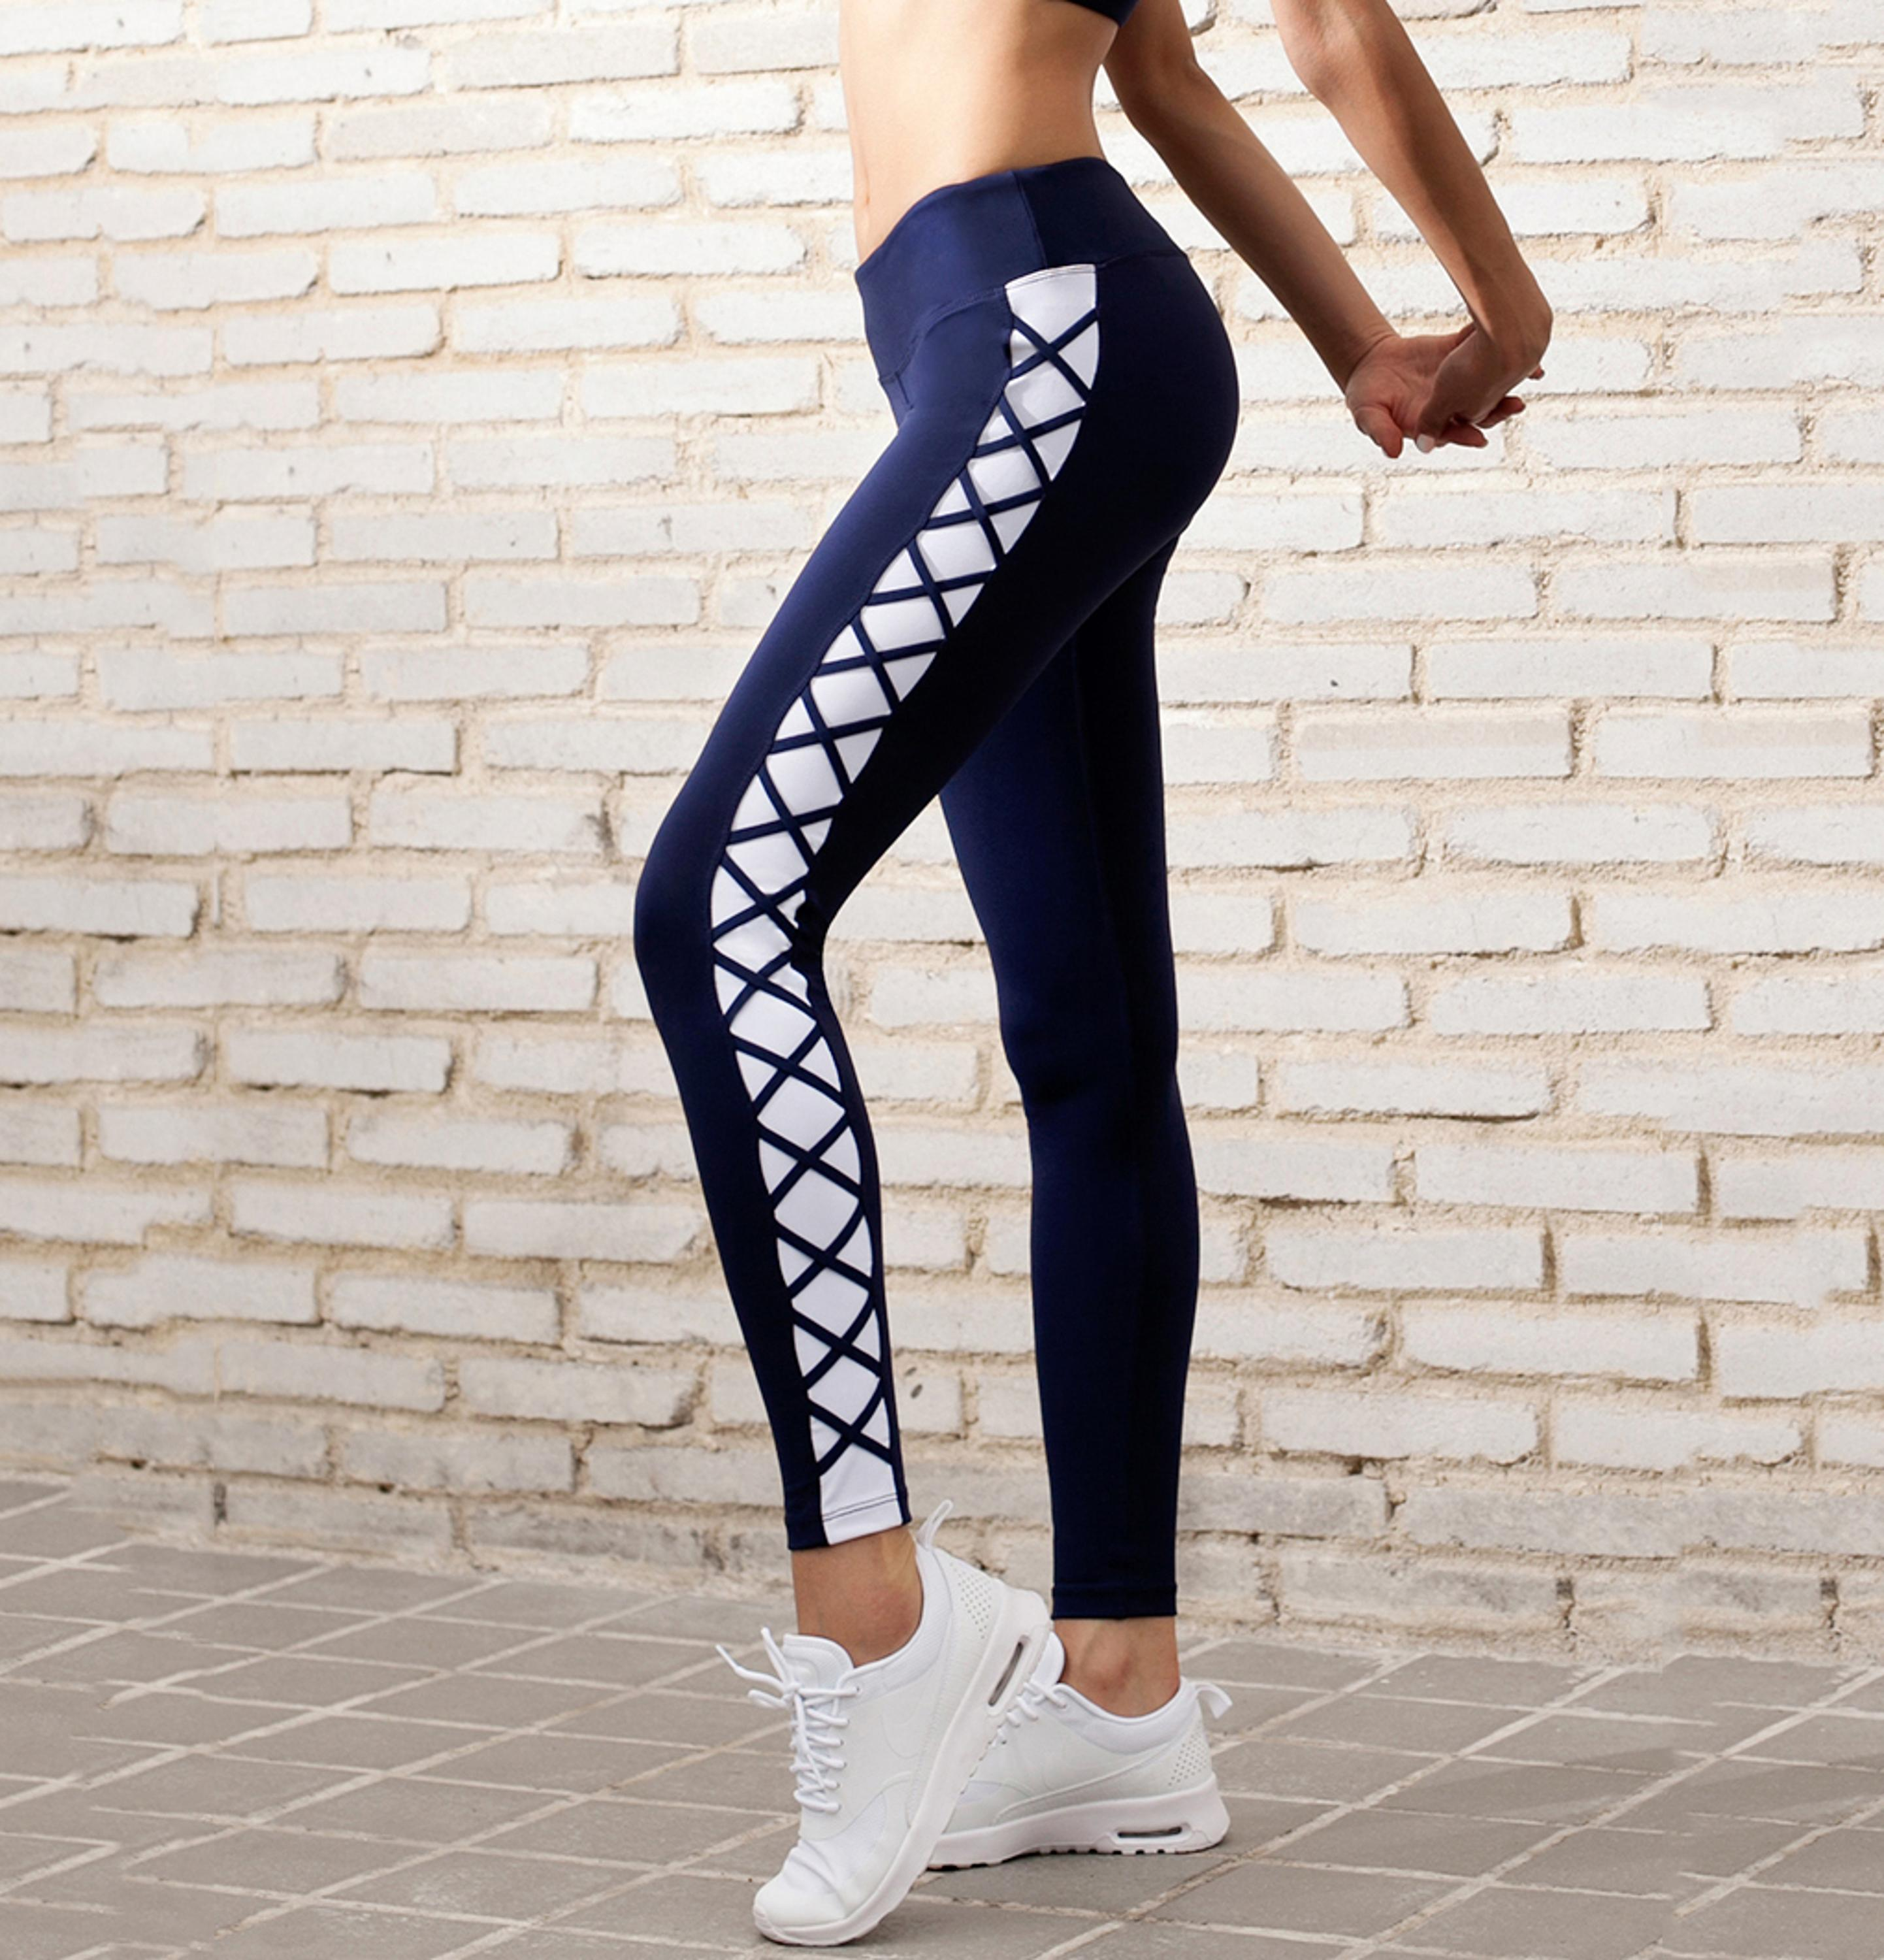 Women's Lightweight See Through Mesh Pro Cool Workout Gym Activewear